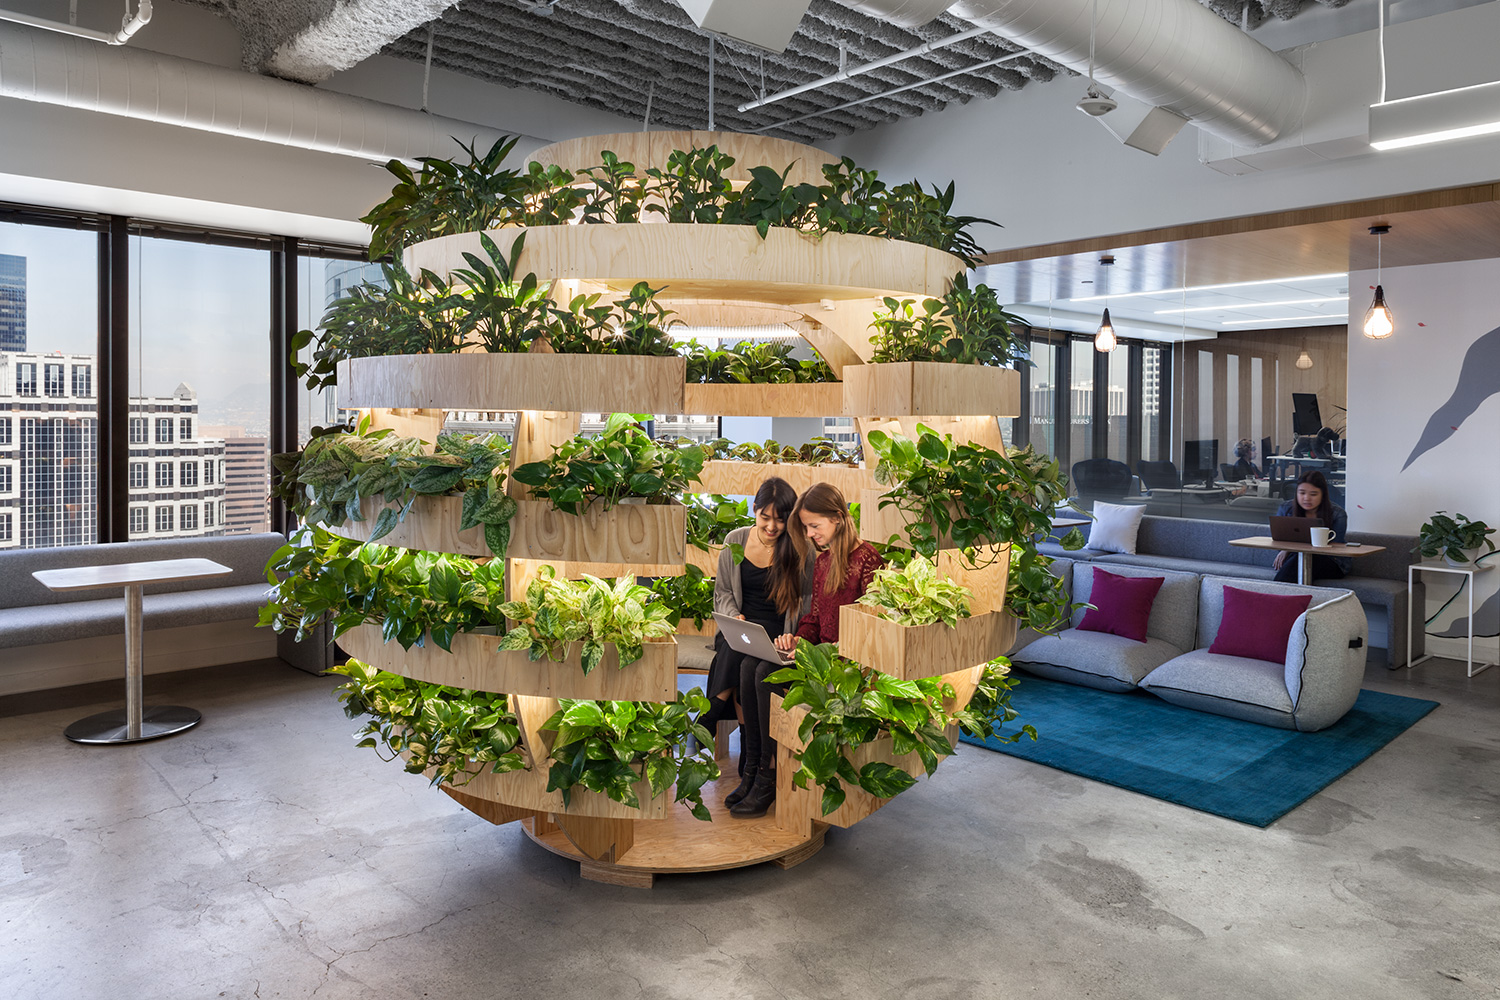 JOANY makes use of potted plants in a creative huddle space with natural light.